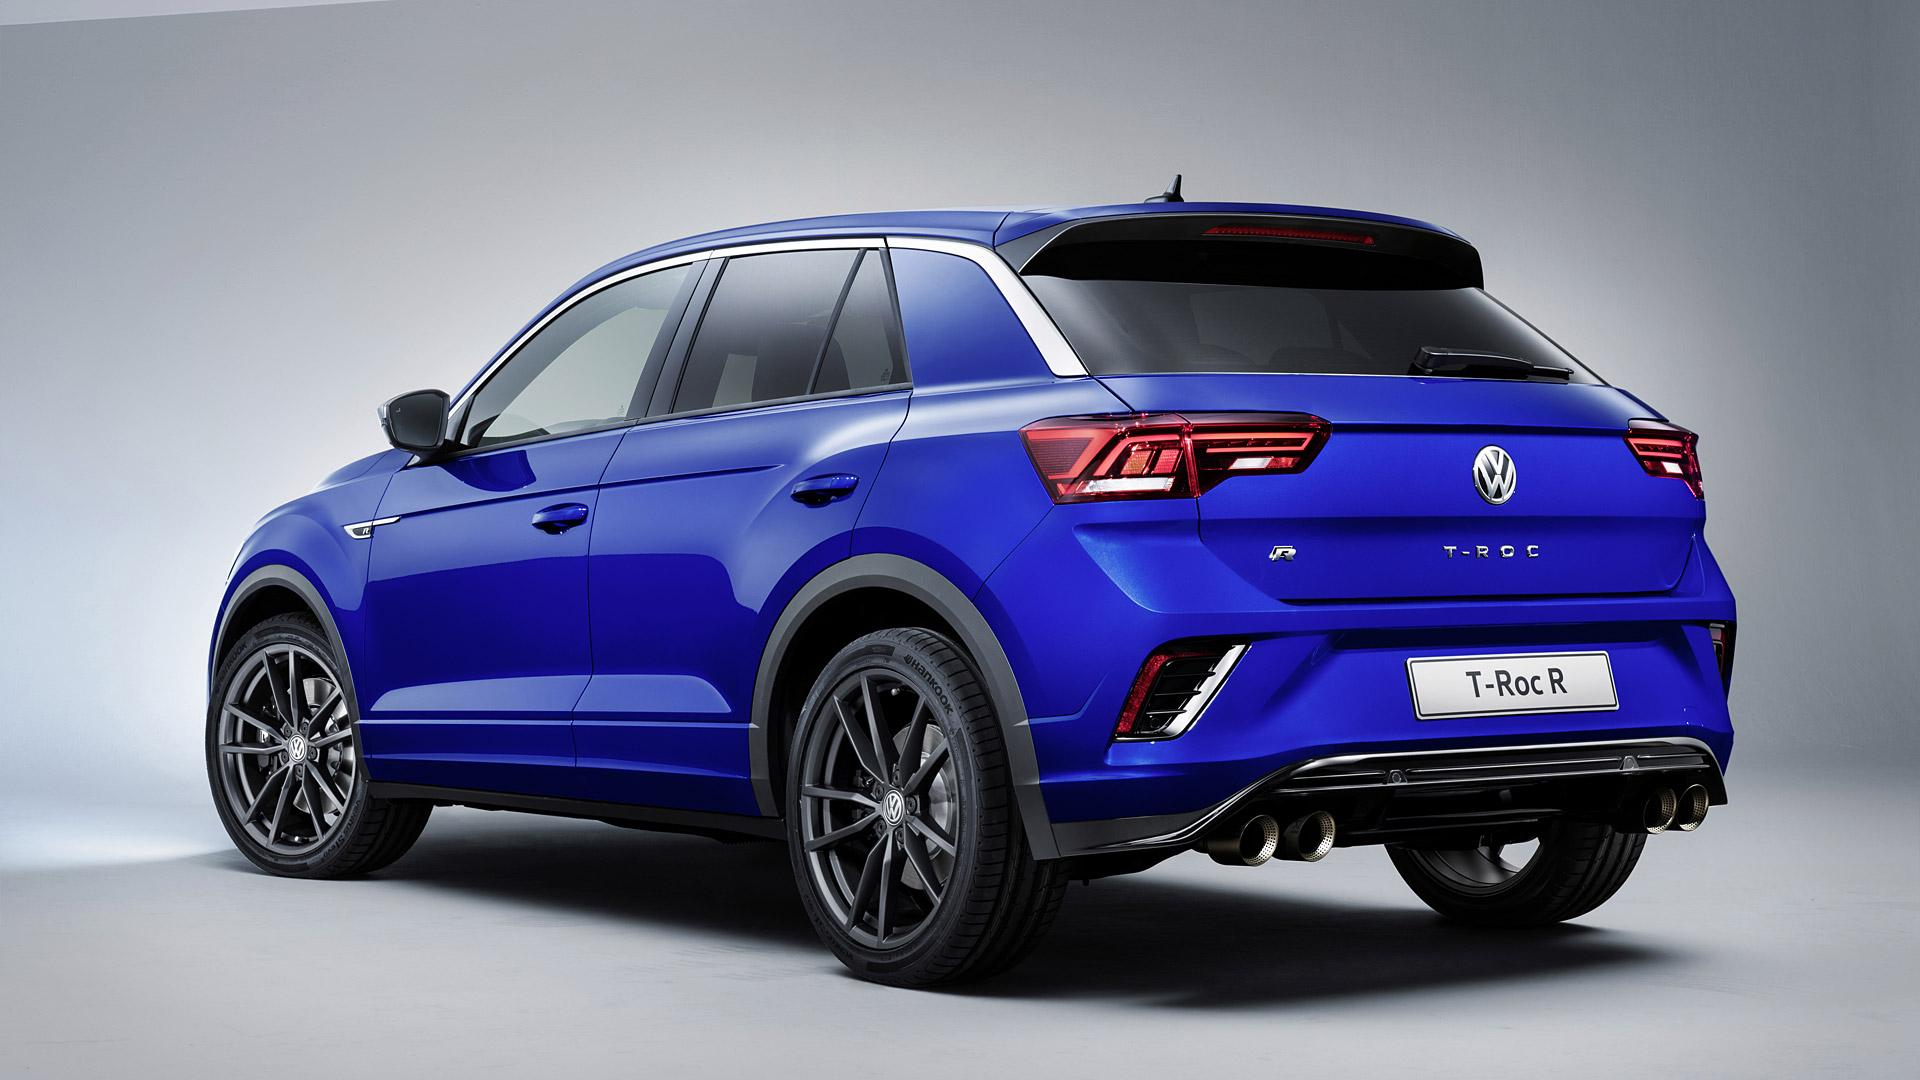 2019 Volkswagen T-Roc R Wallpapers & HD Images - WSupercars